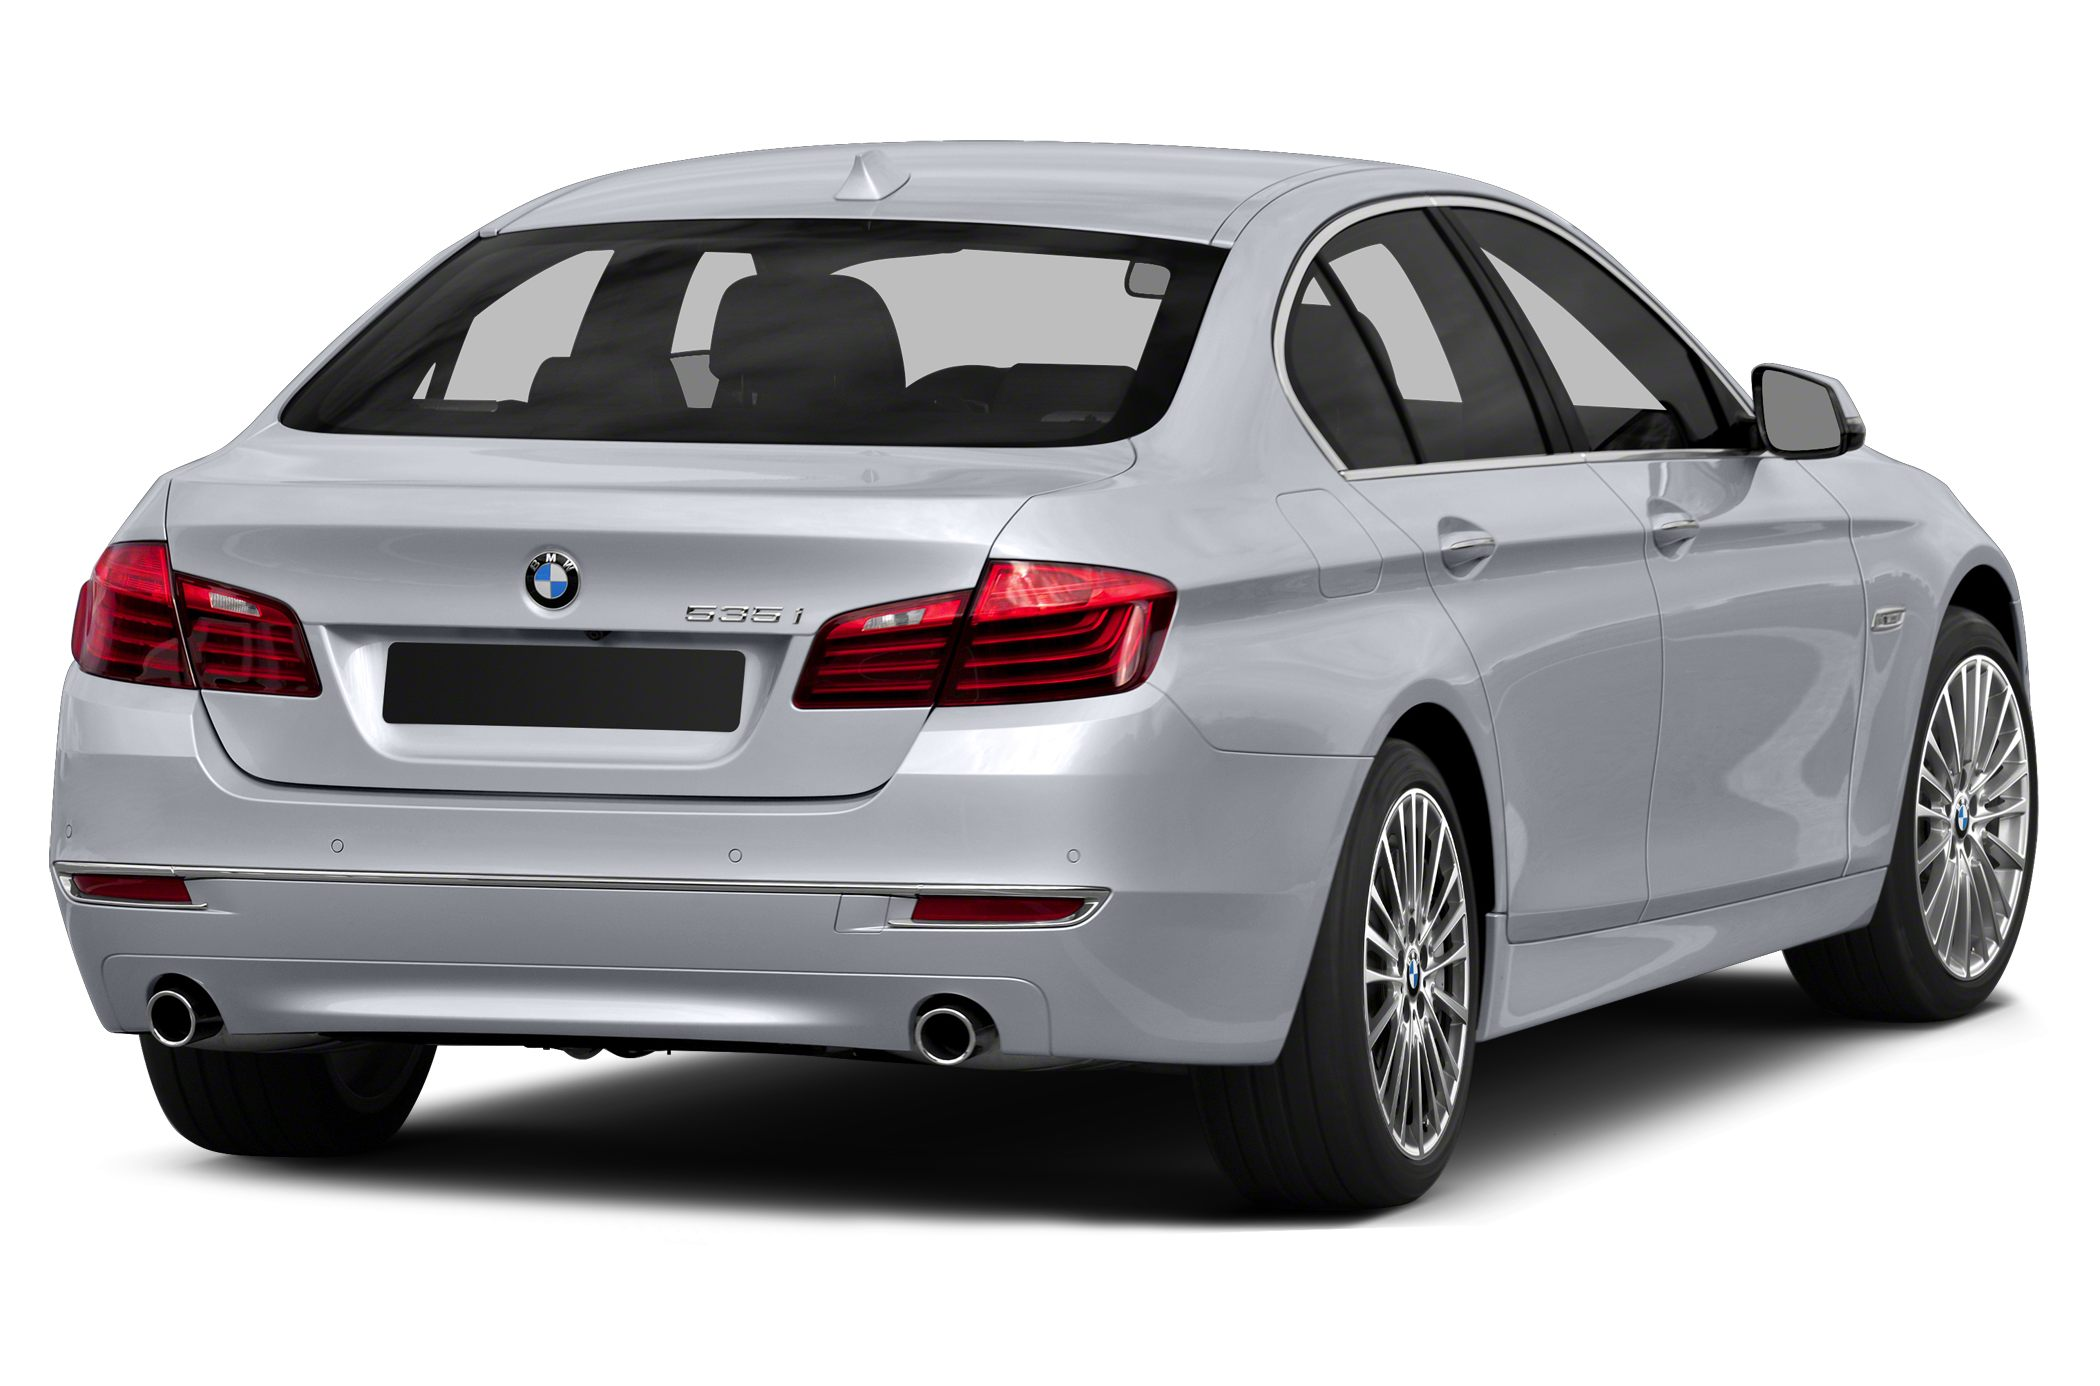 Bmw 535 2014 Review Amazing Pictures And Images Look